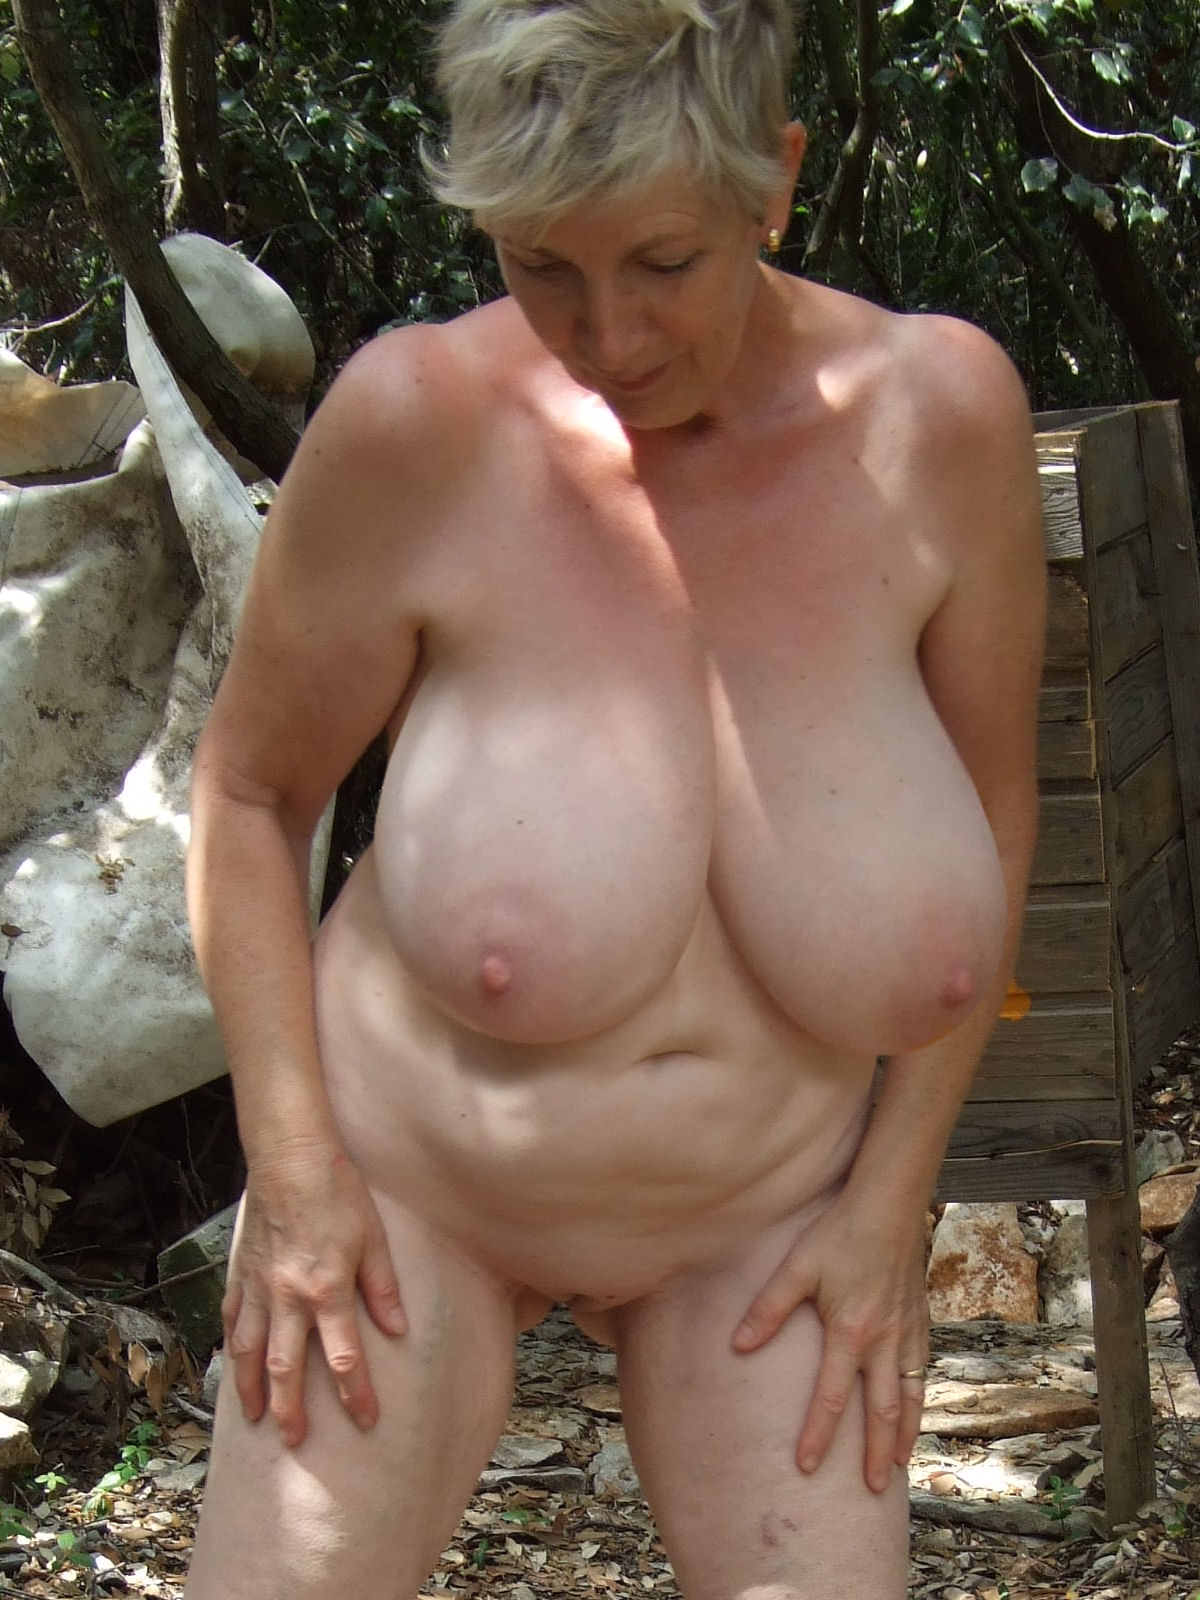 tits-older-desperate-housewives-sex-nude